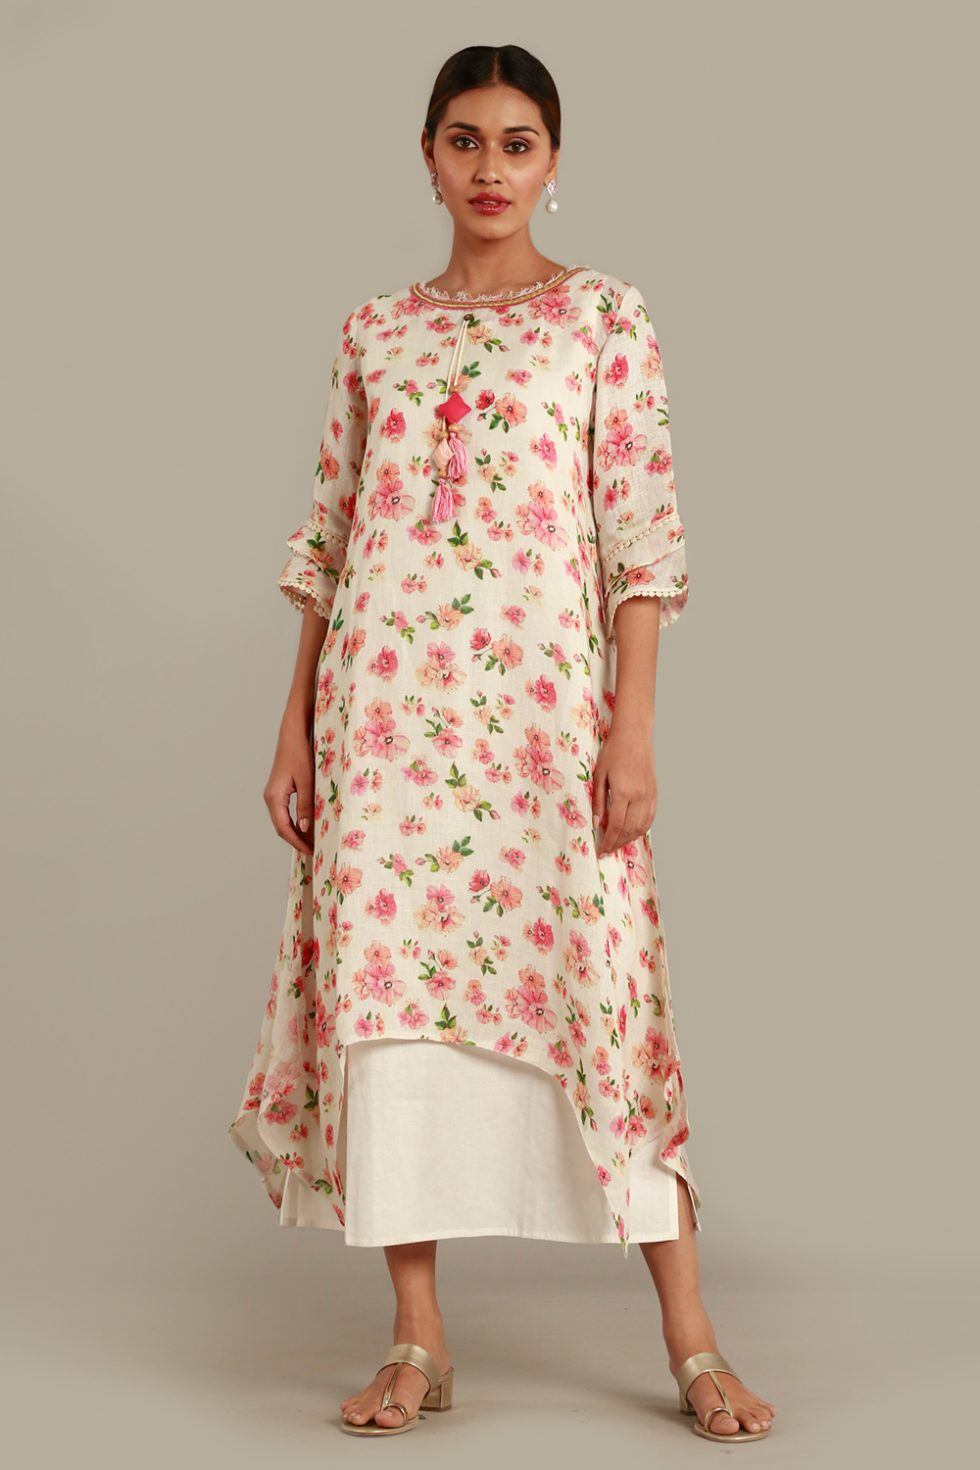 Ivory white layered kurti with contrast coloured floral print and tiered sleeves